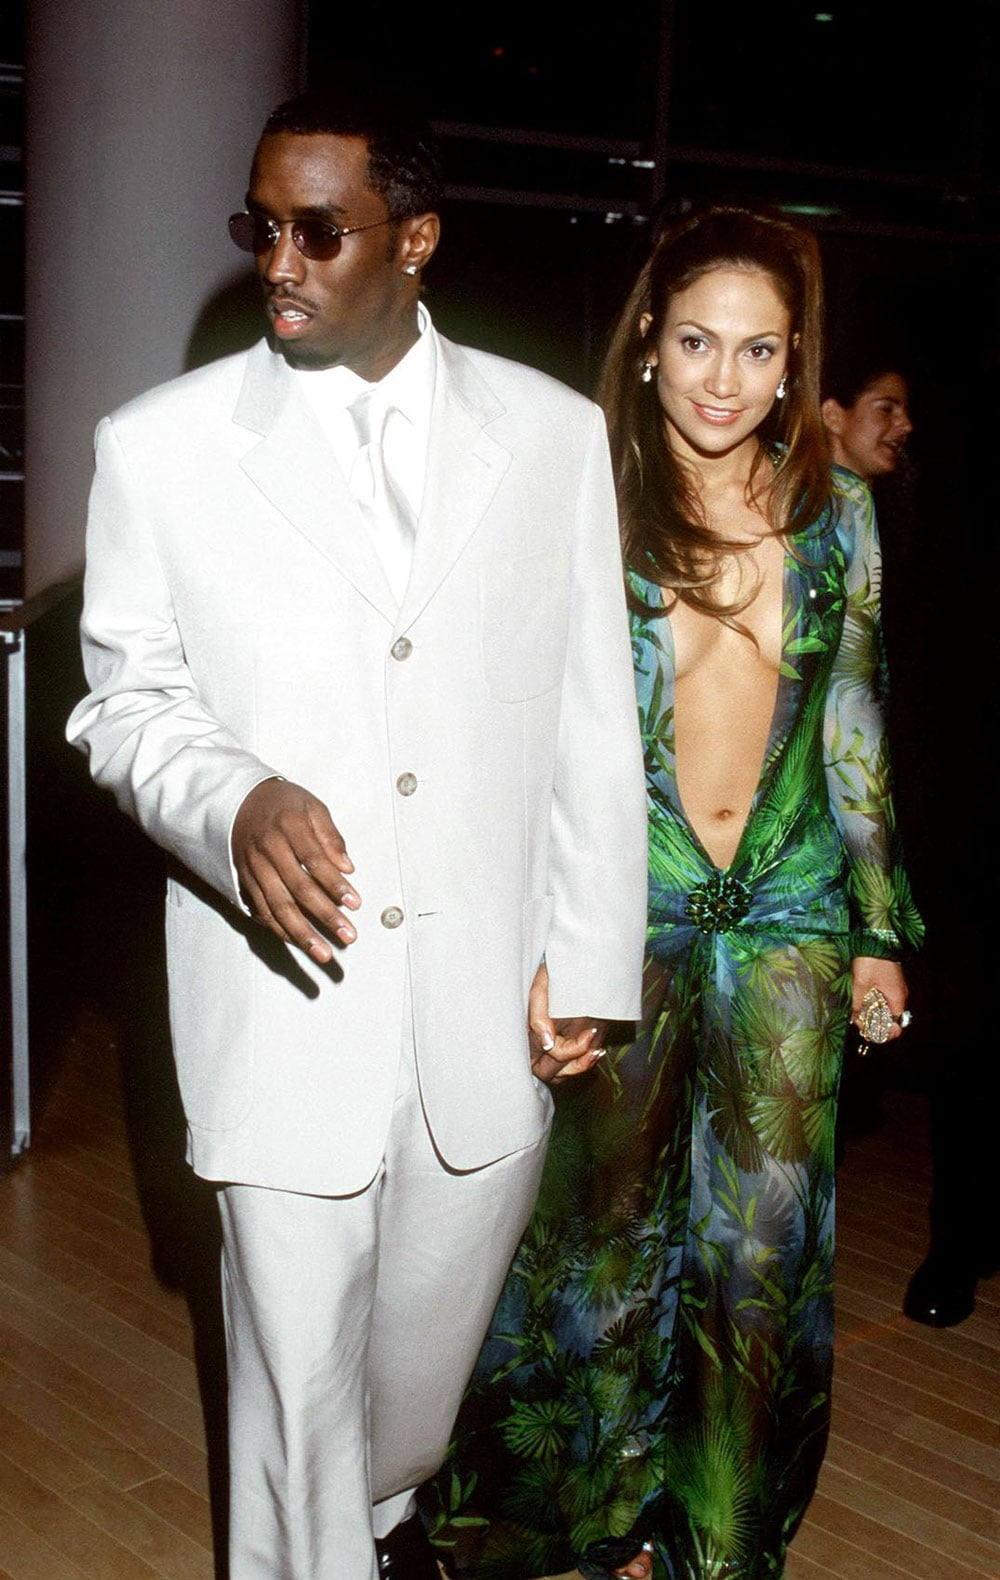 Jennifer Lopez wowed the crowd in that now-infamous Versace gown alongside Diddy in 2002.